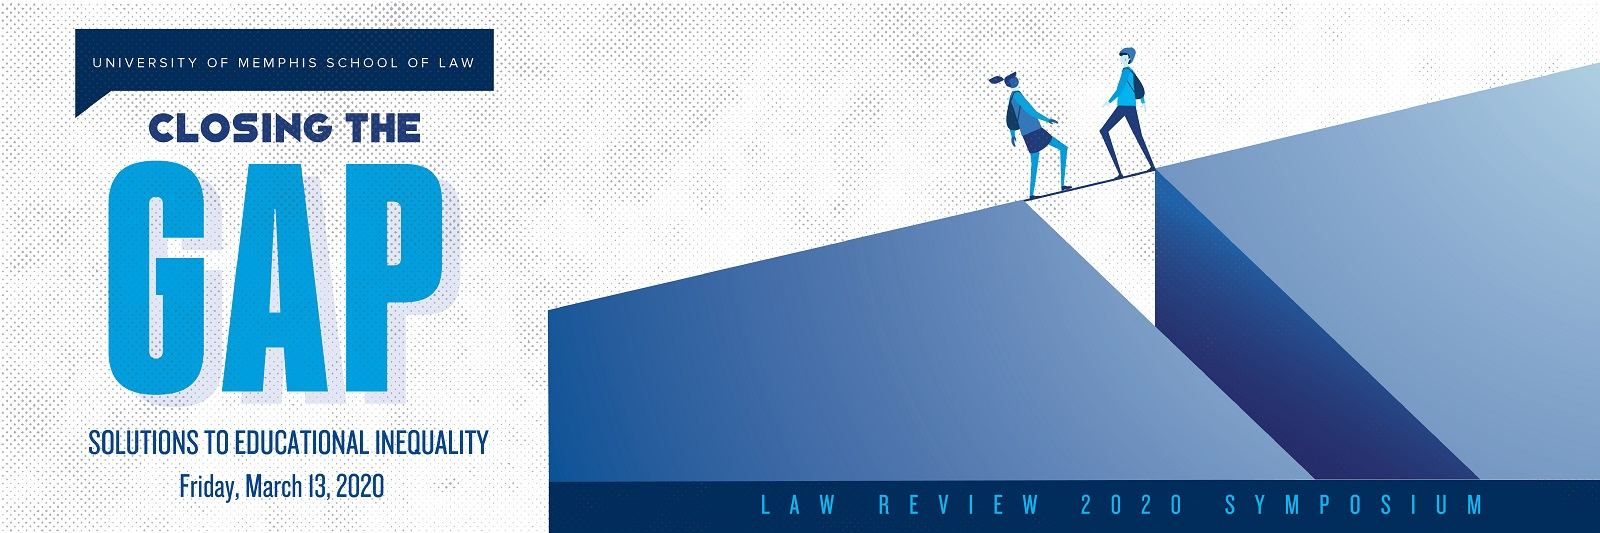 2020 Law Review Symposium